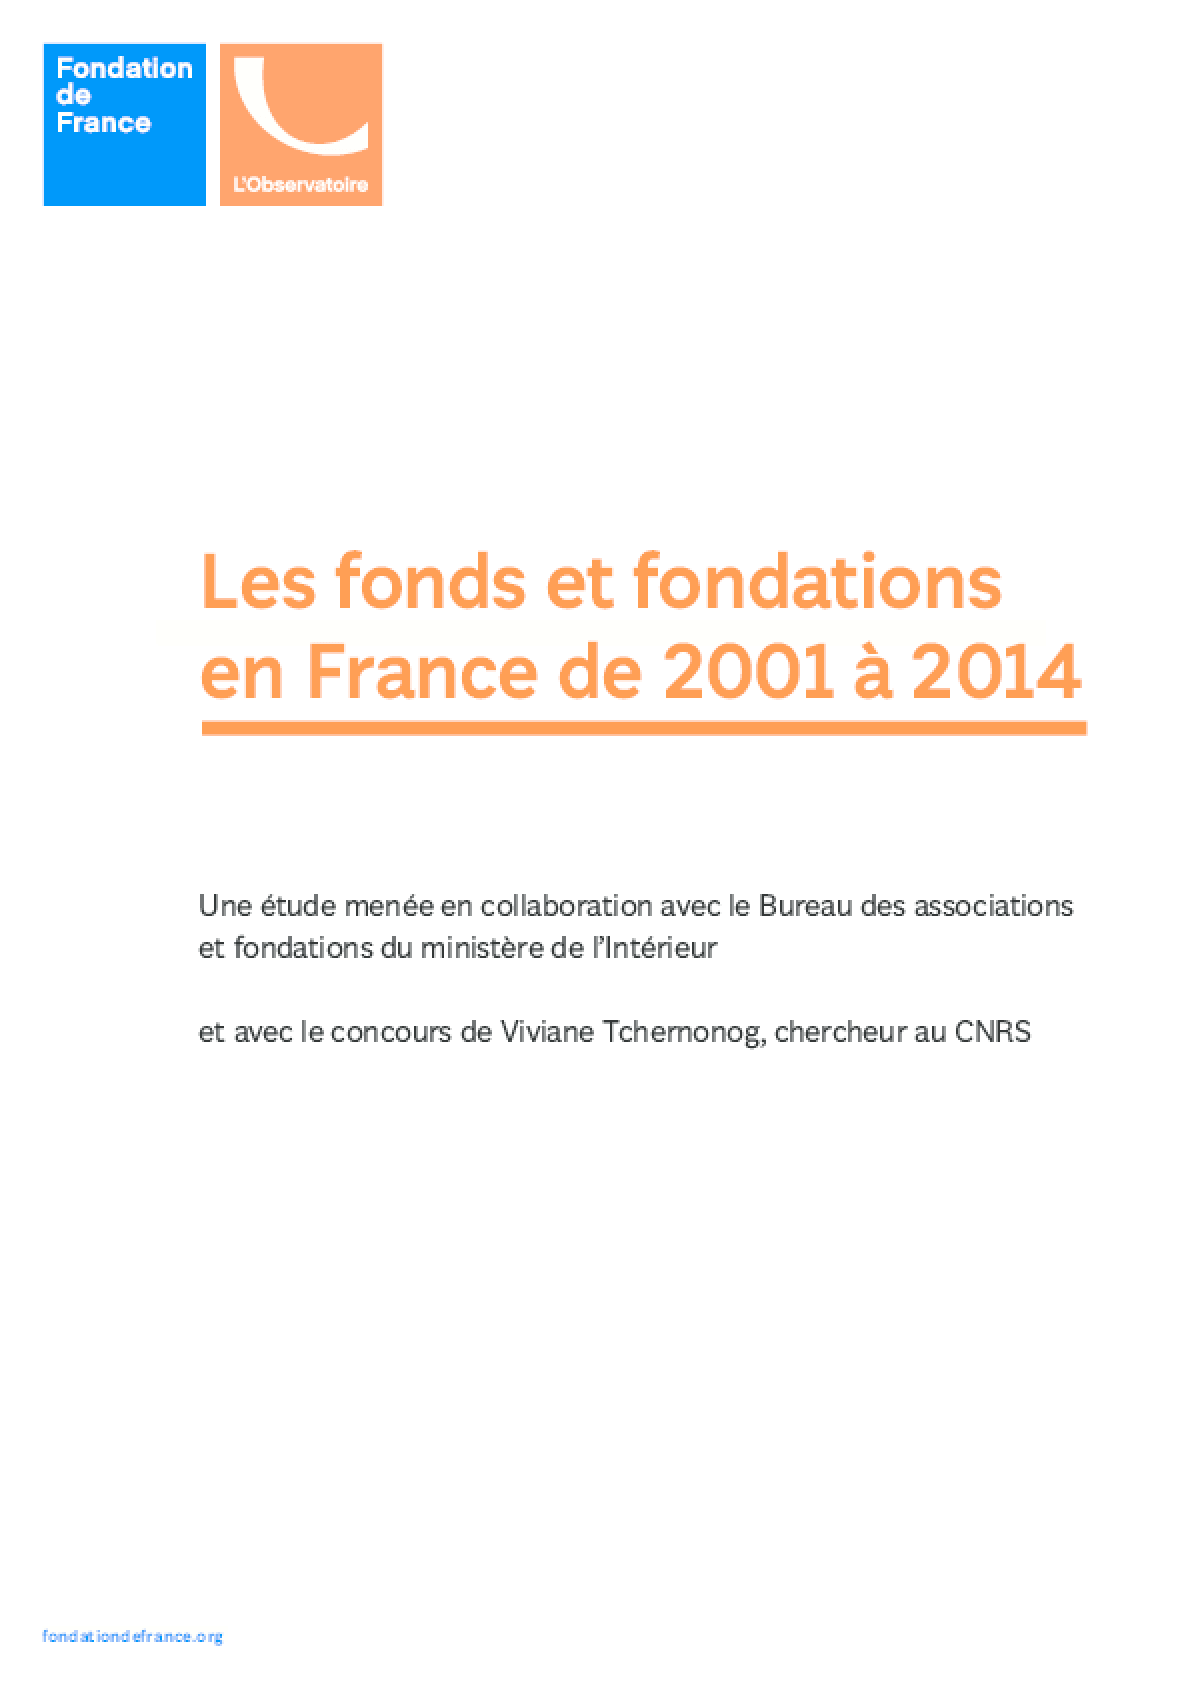 Les fonds et fondations en France de 2001 à 2014